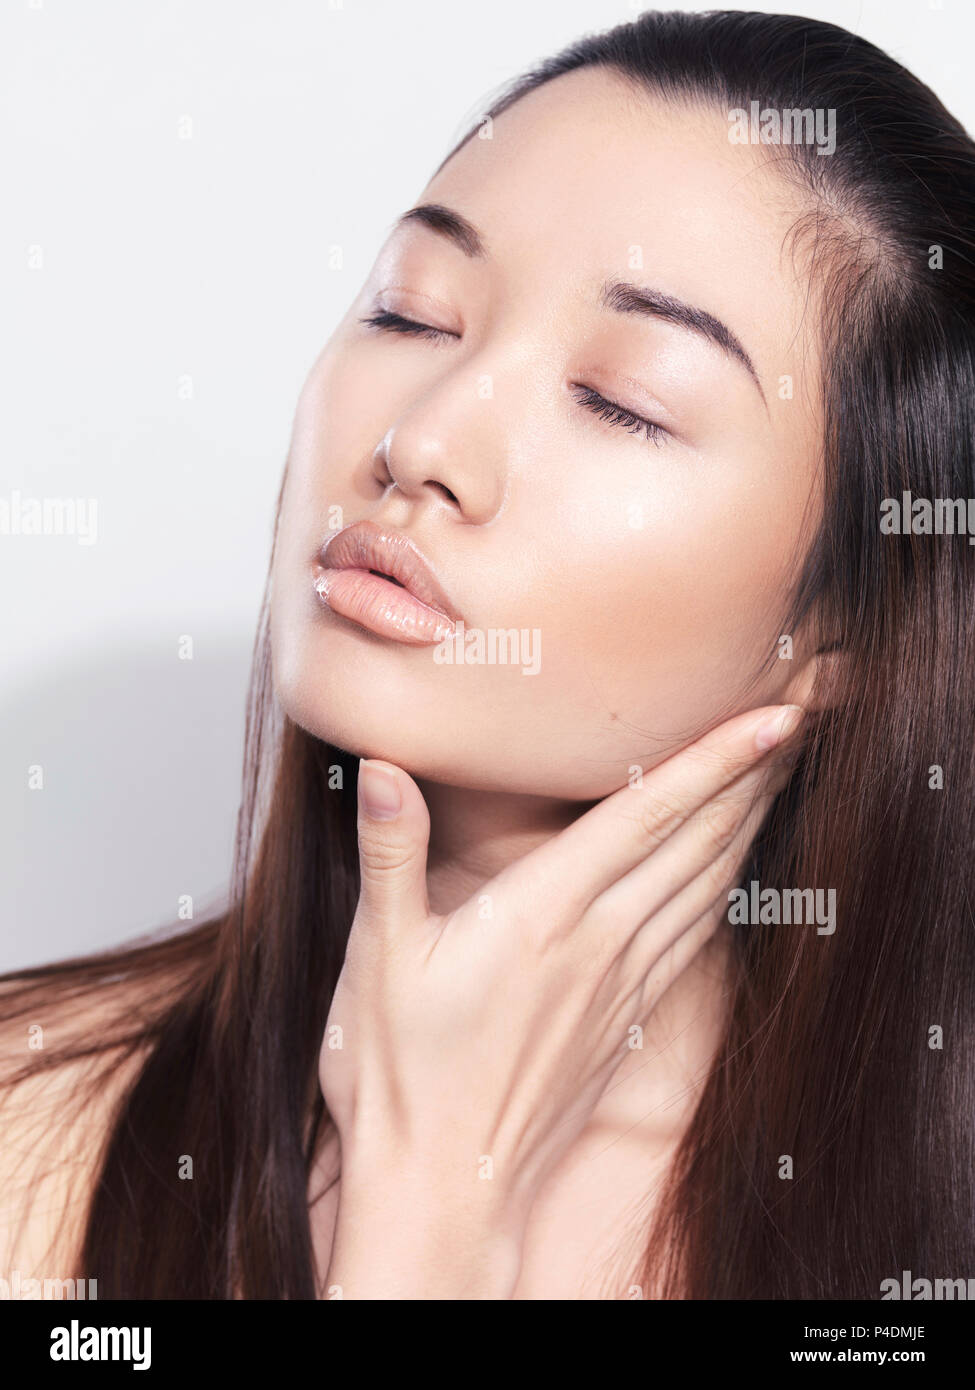 Closeup beauty portrait of an asian young woman face with light porcelain or glass skin - Stock Image